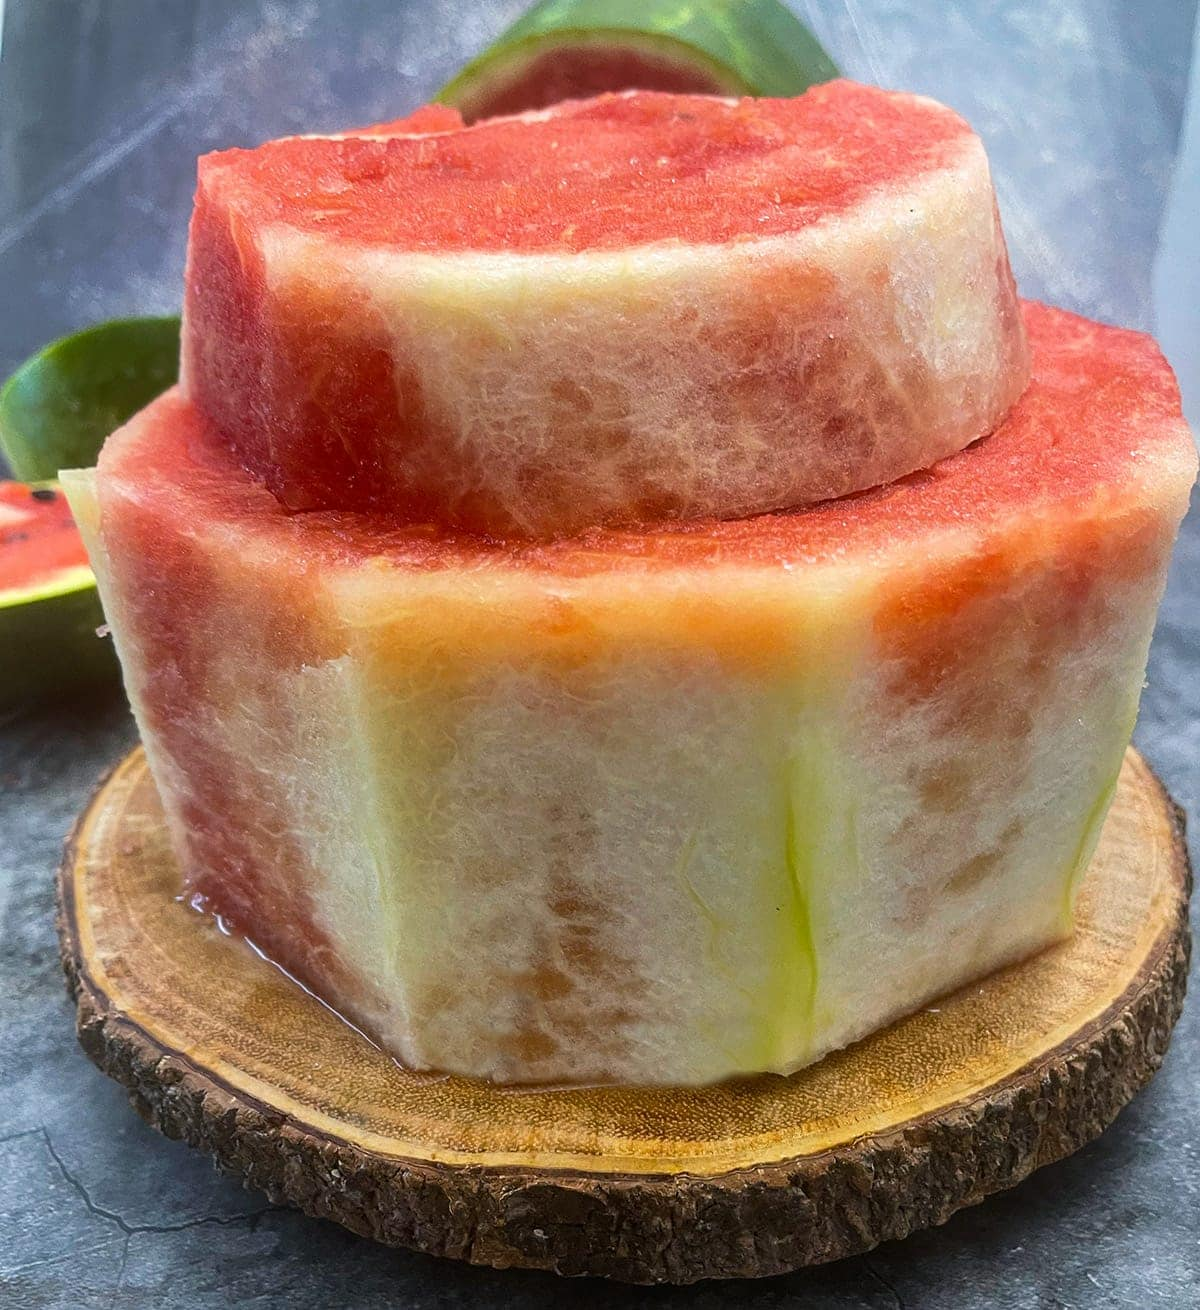 Carved watermelon layers